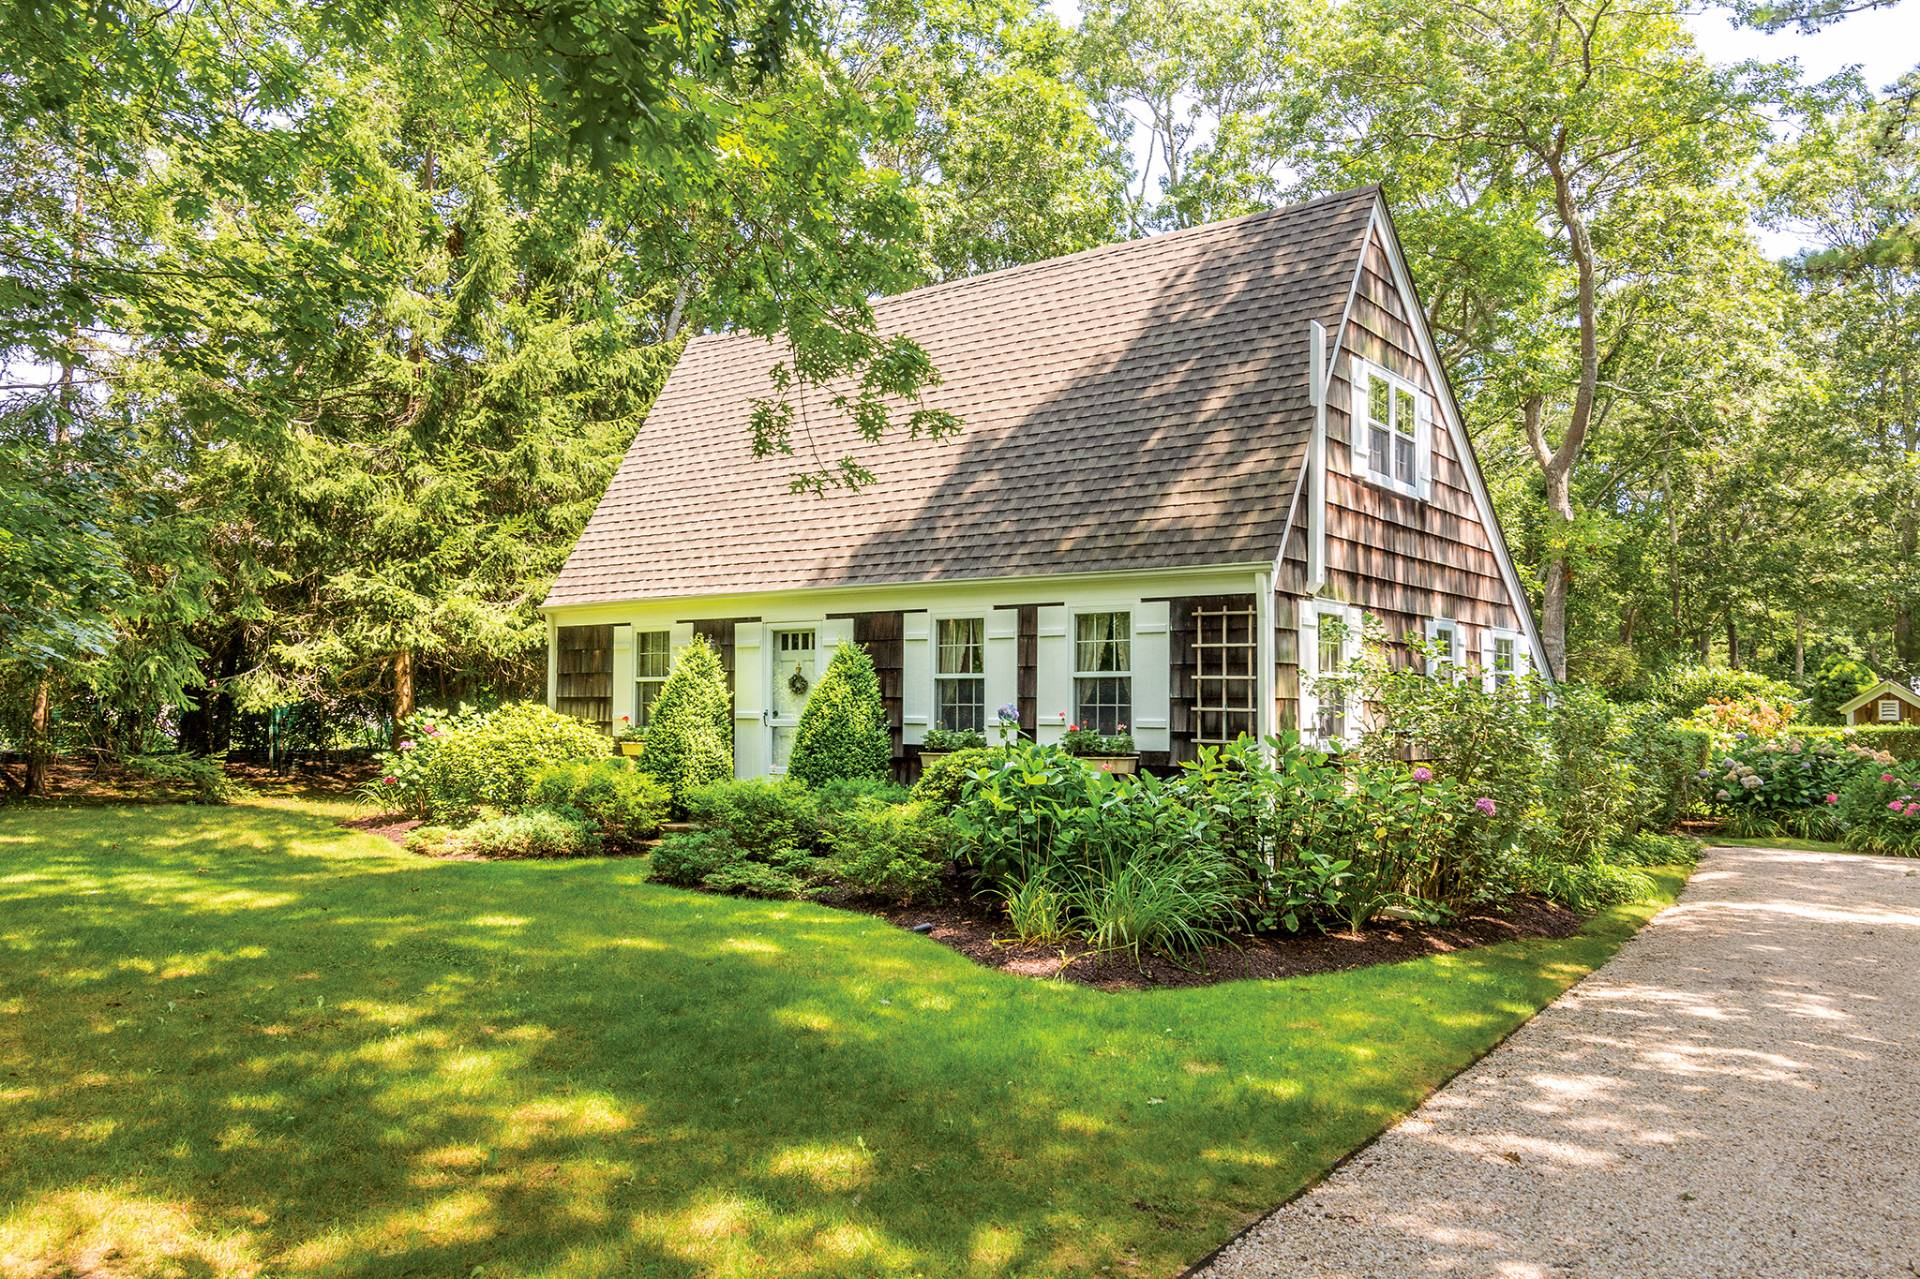 Single Family Home for Sale at Storybook Cottage In Wainscott South 6 Windsor Lane, Wainscott, New York